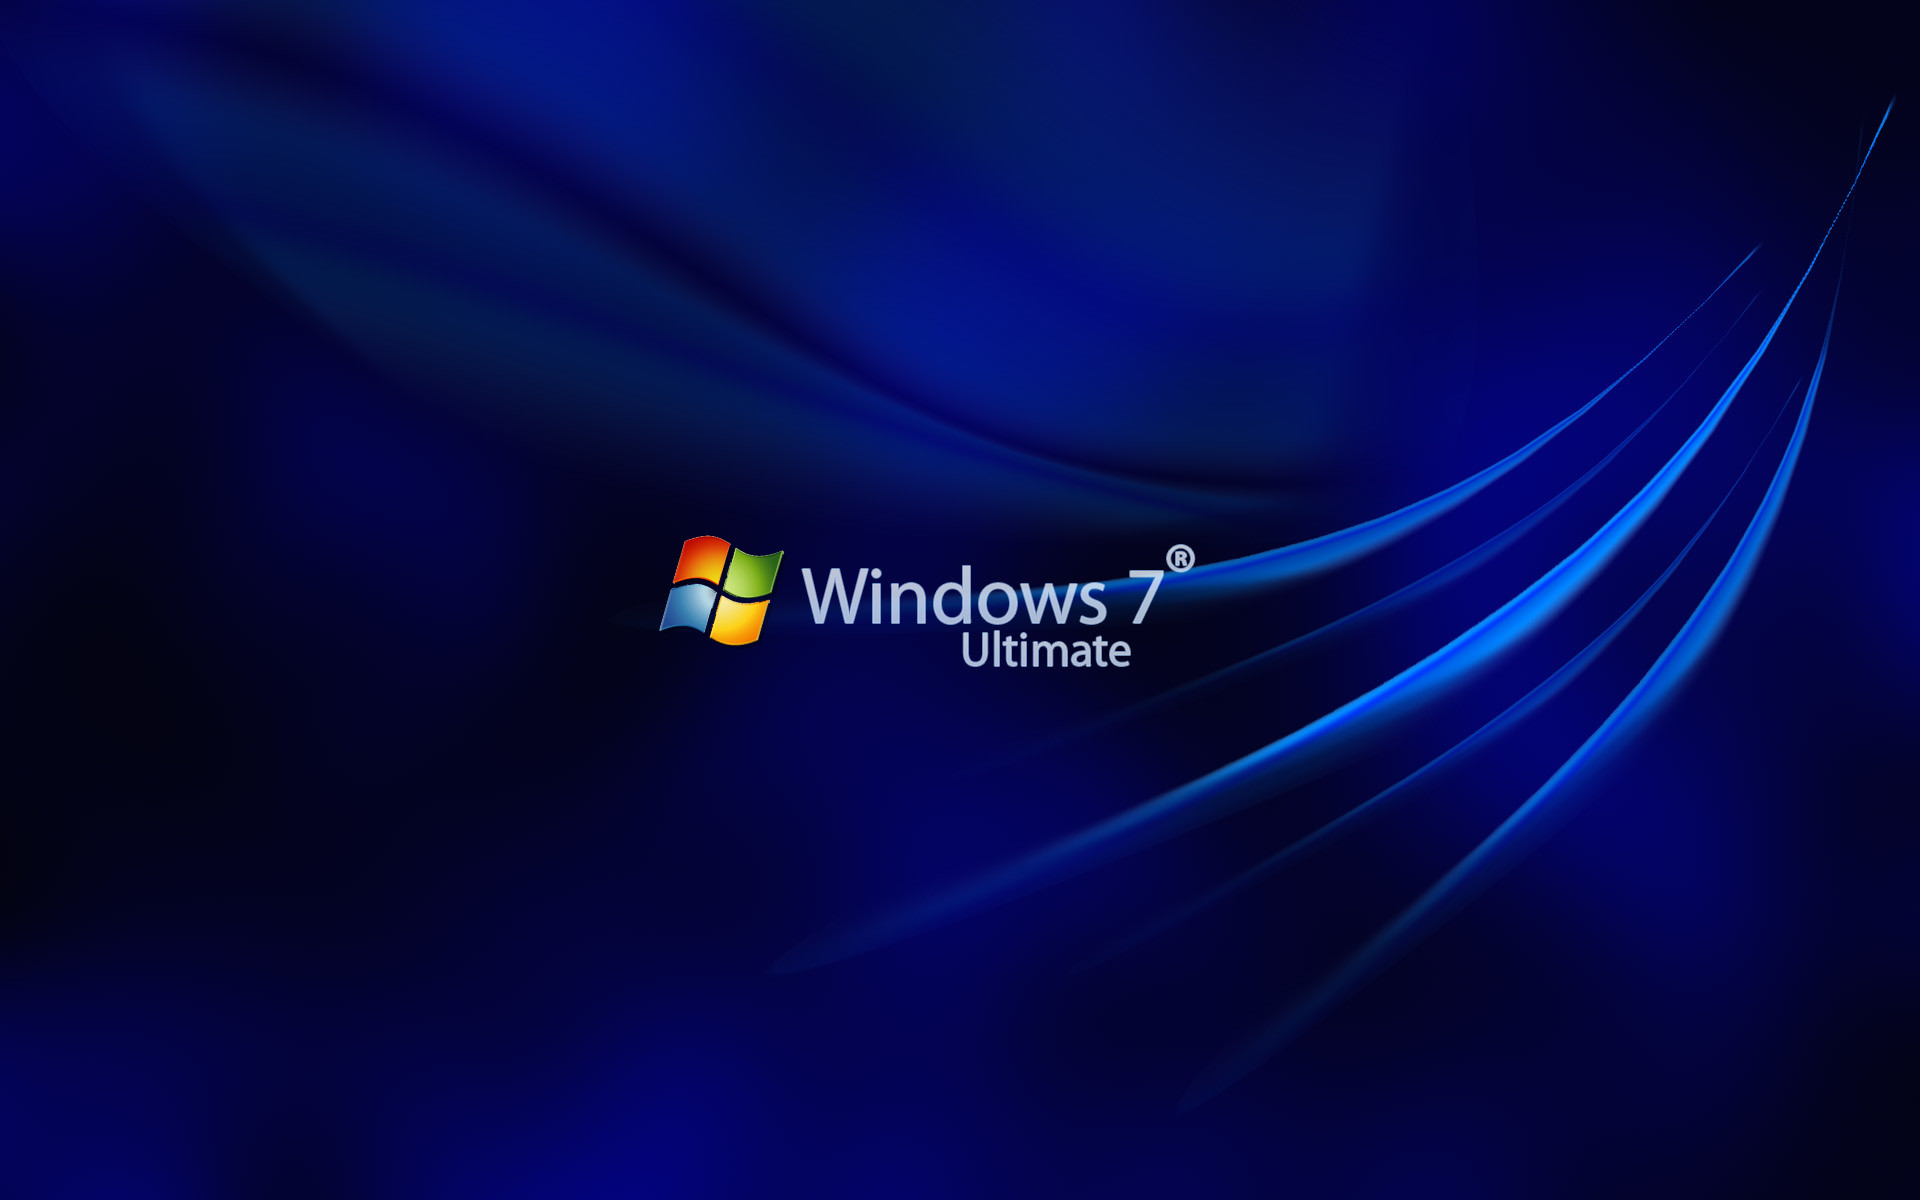 1920x1200 Windows 7 Professional Digital Set Us Desktop Wallpapers Desktop .